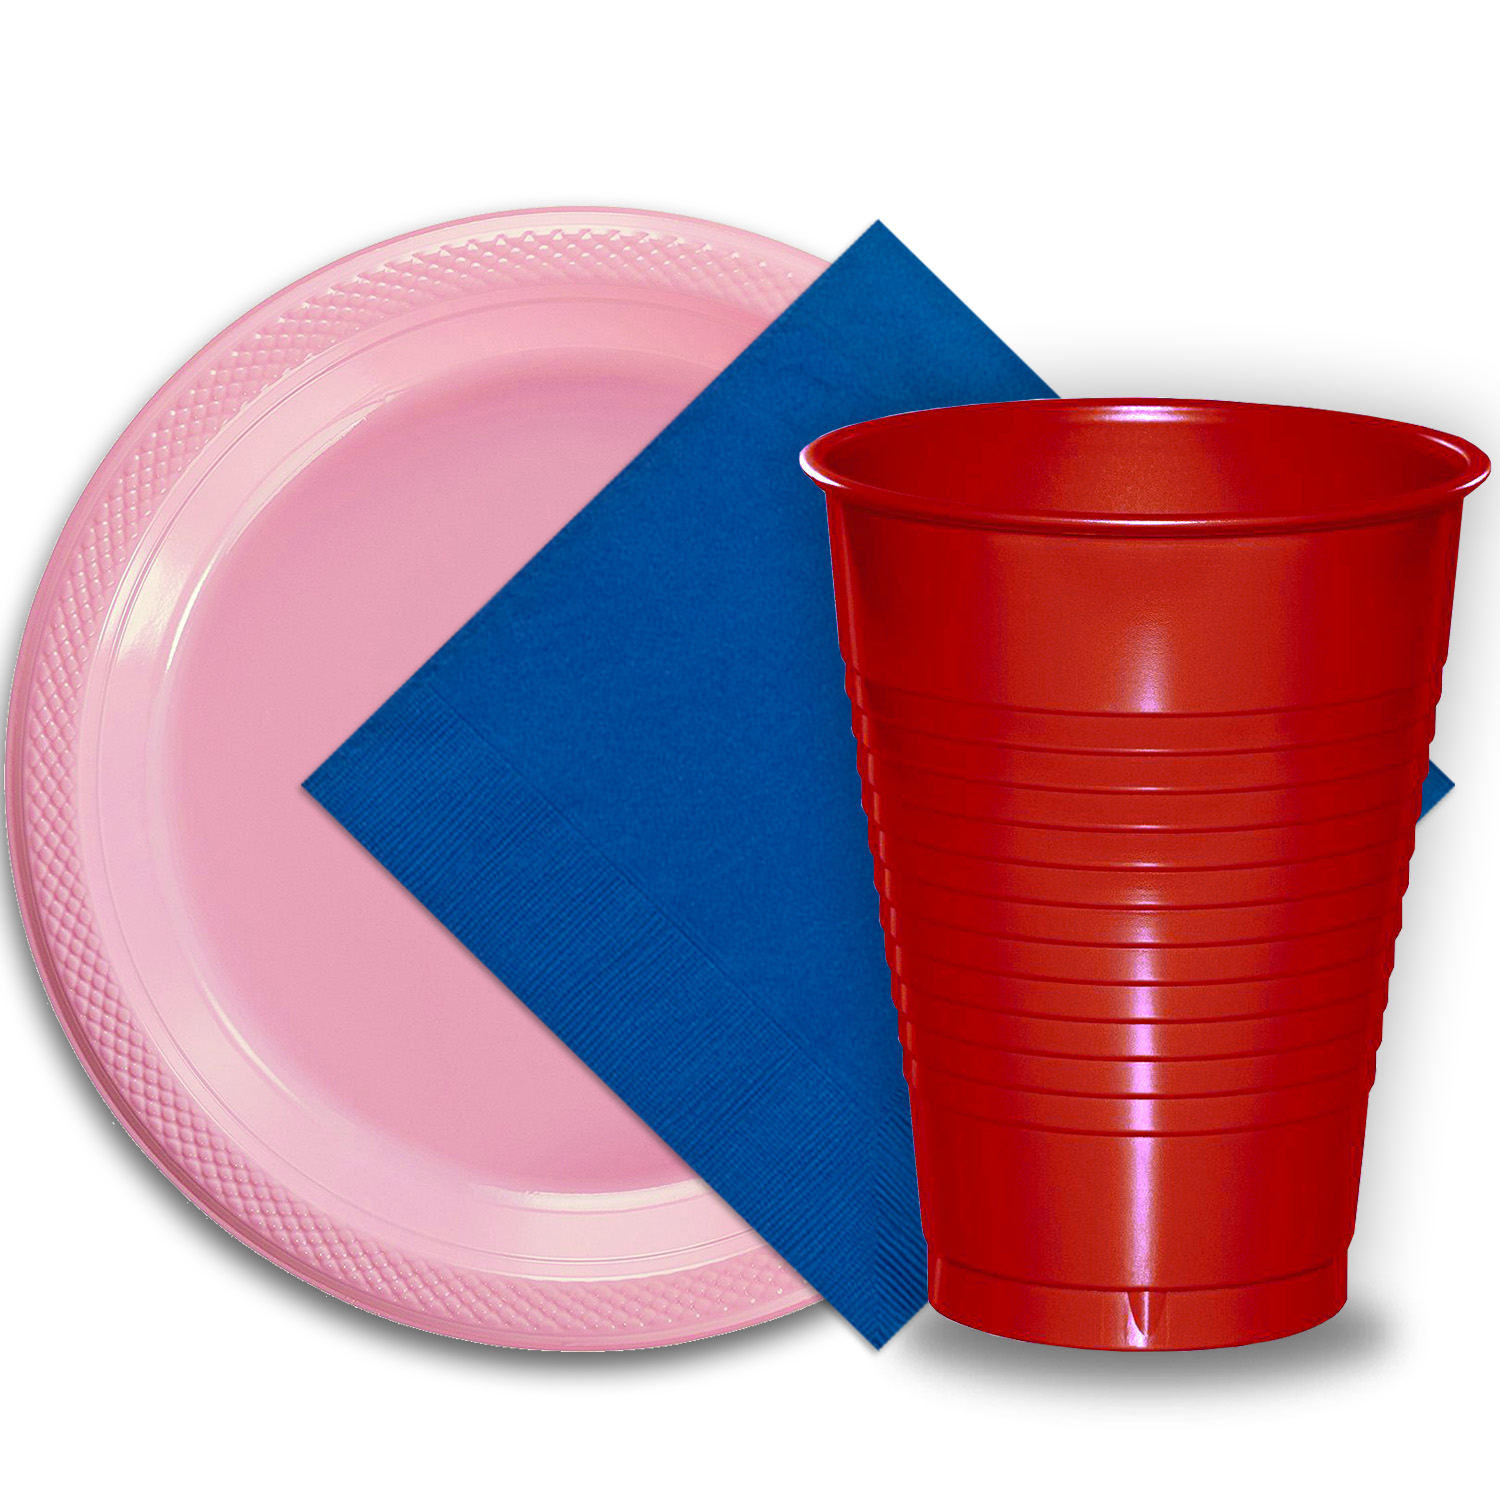 "50 Pink Plastic Plates (9""), 50 Red Plastic Cups (12 oz.), and 50 Dark Blue Paper Napkins, Dazzelling Colored Disposable Party Supplies Tableware Set for Fifty Guests."